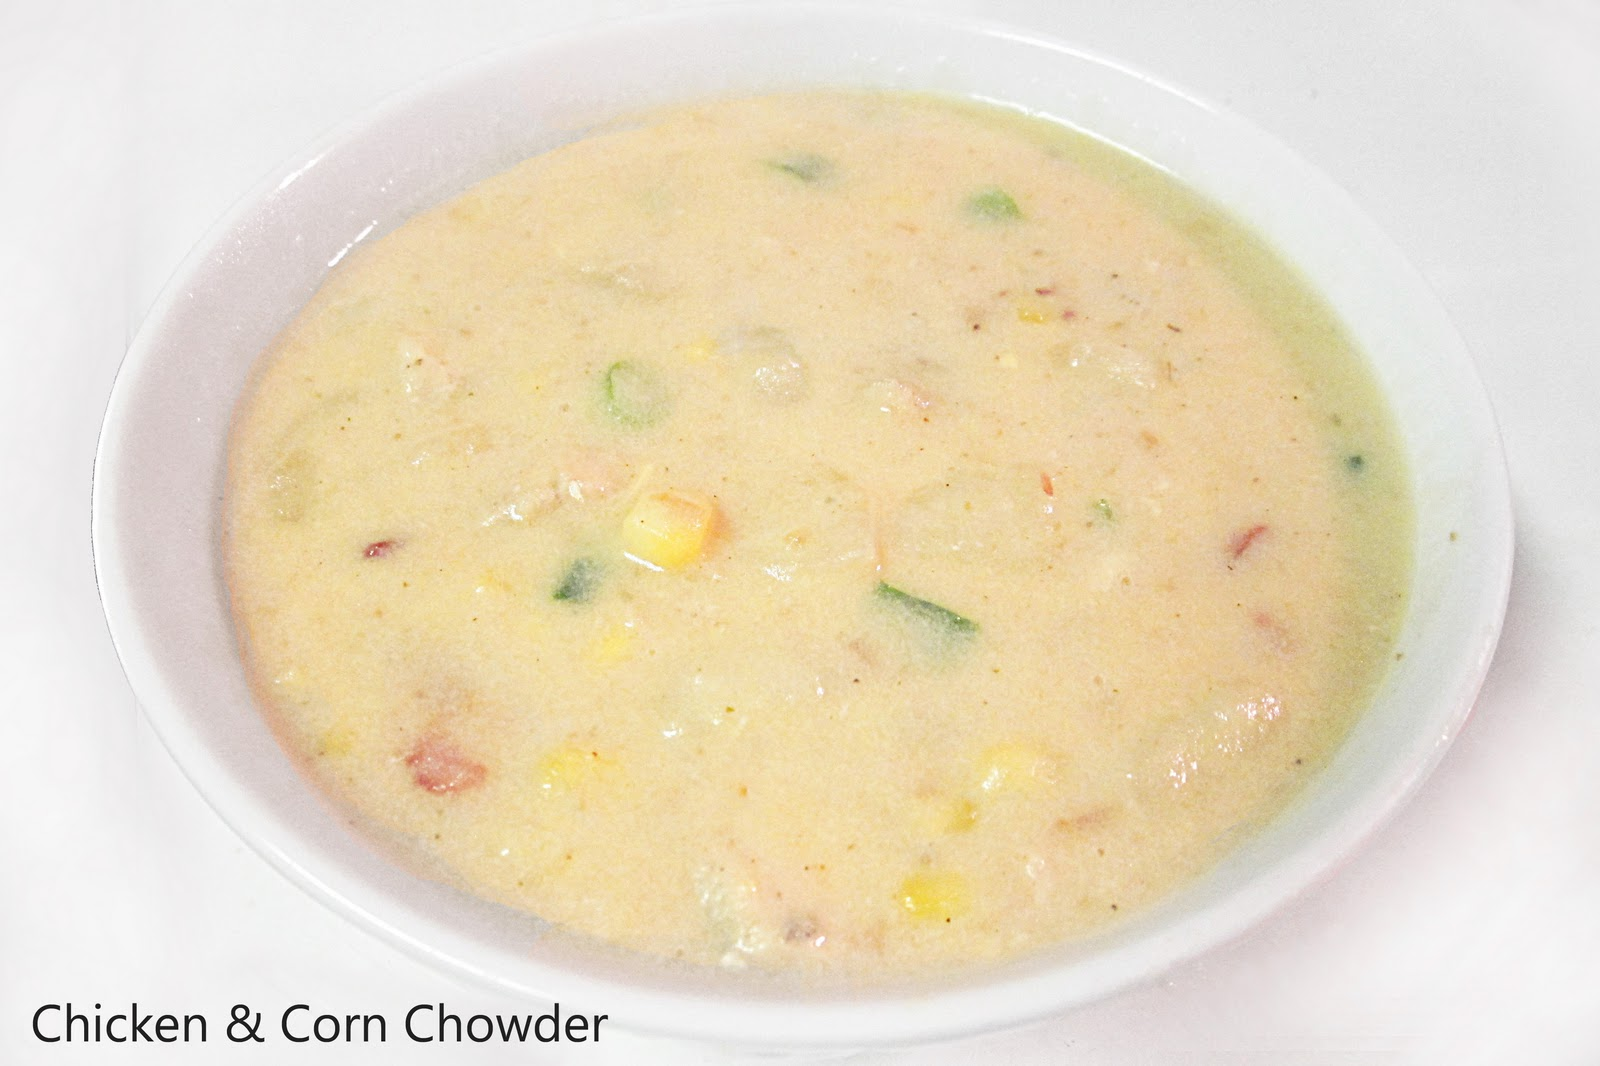 Diddles and Dumplings: Chicken & Corn Chowder